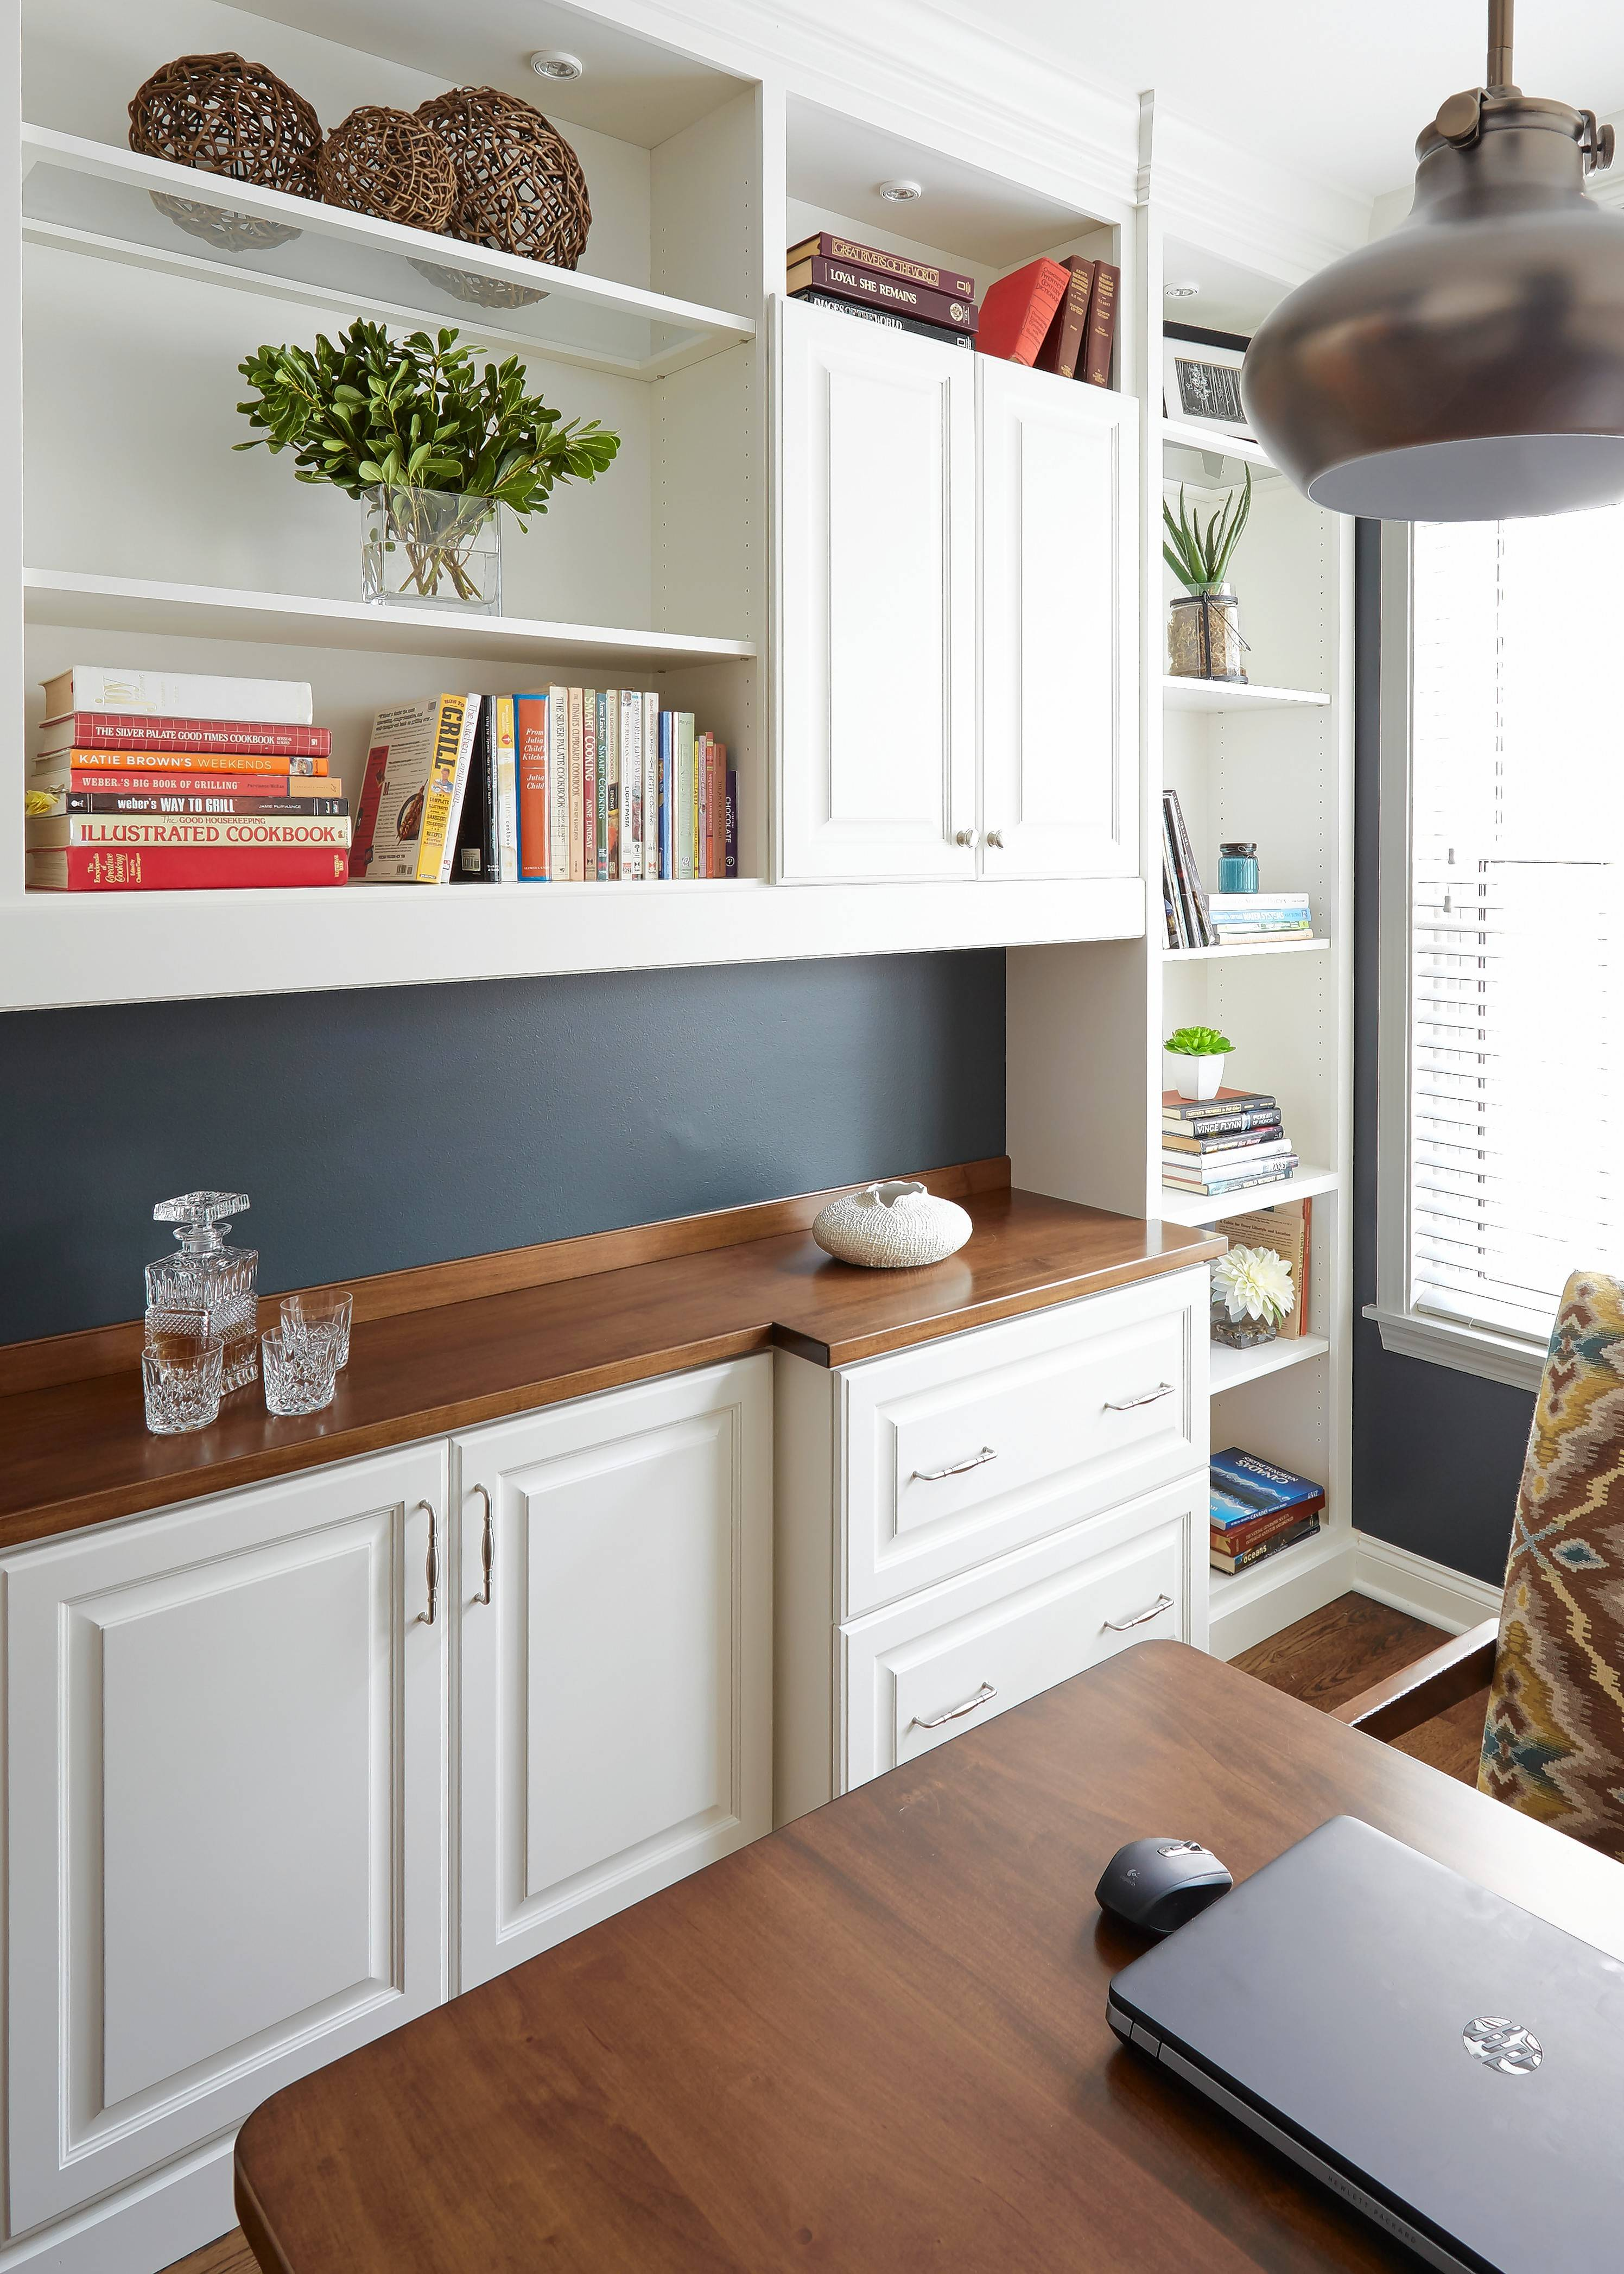 In this home office design by Jennifer McGinnis of Redux Interior Design in Lake Zurich, custom built-in cabinetry provides plenty of storage space and still show clean lines with cables and docking stations hidden.